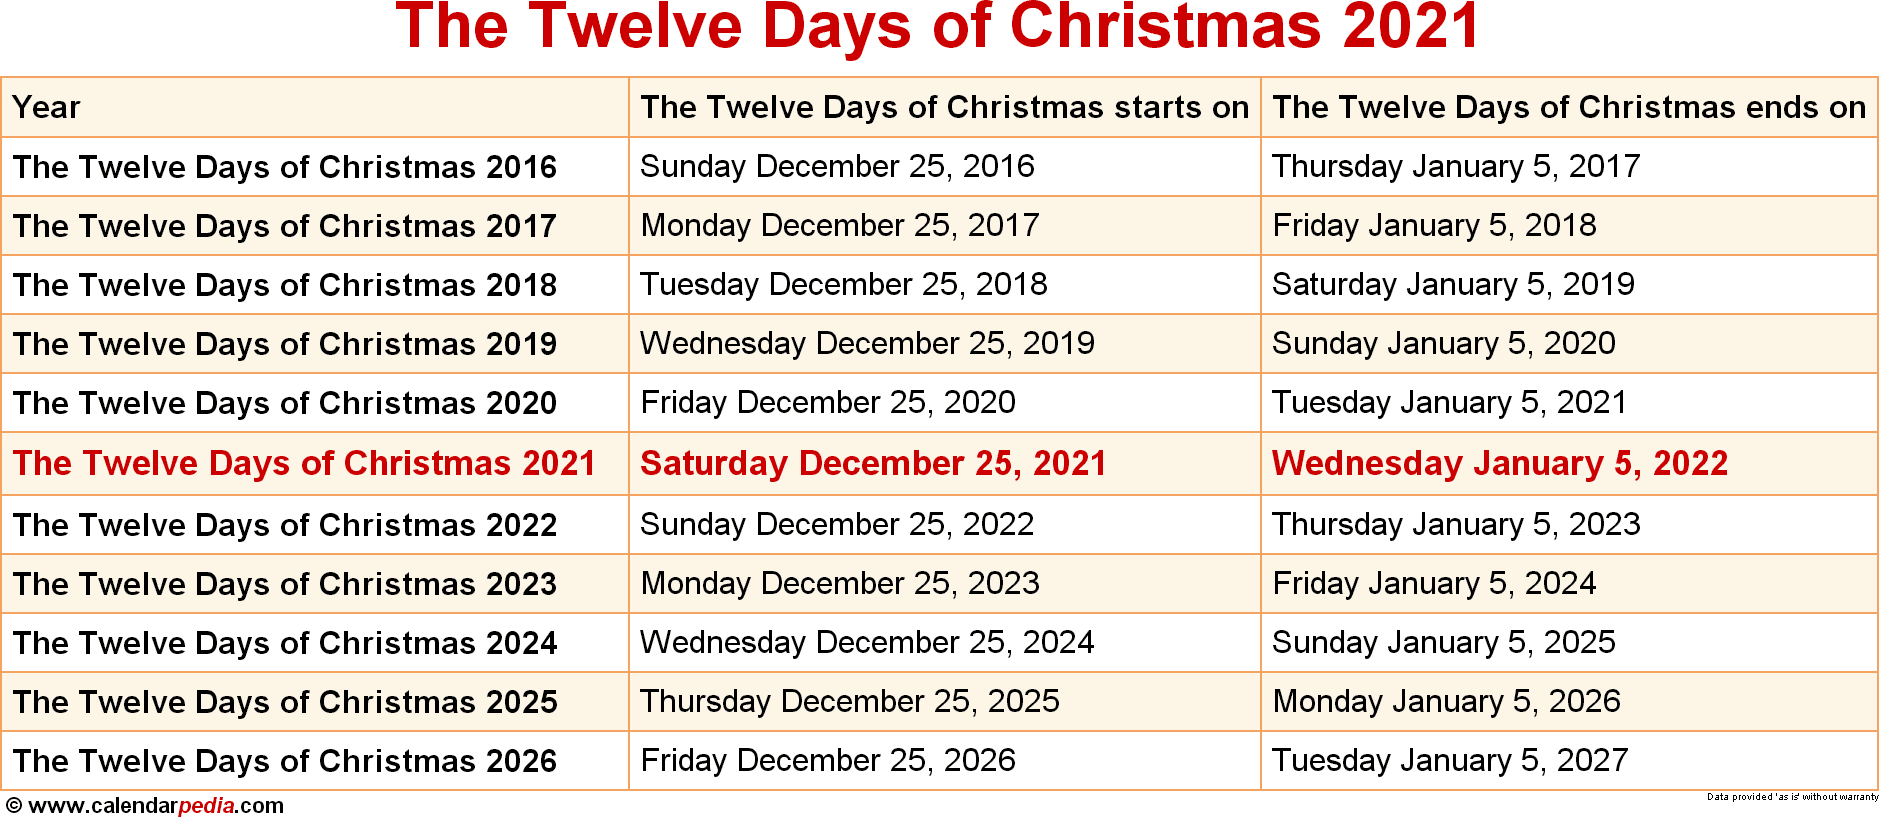 Rochester Mills 2 Days Of Christmas 2021 When Is The Twelve Days Of Christmas 2021